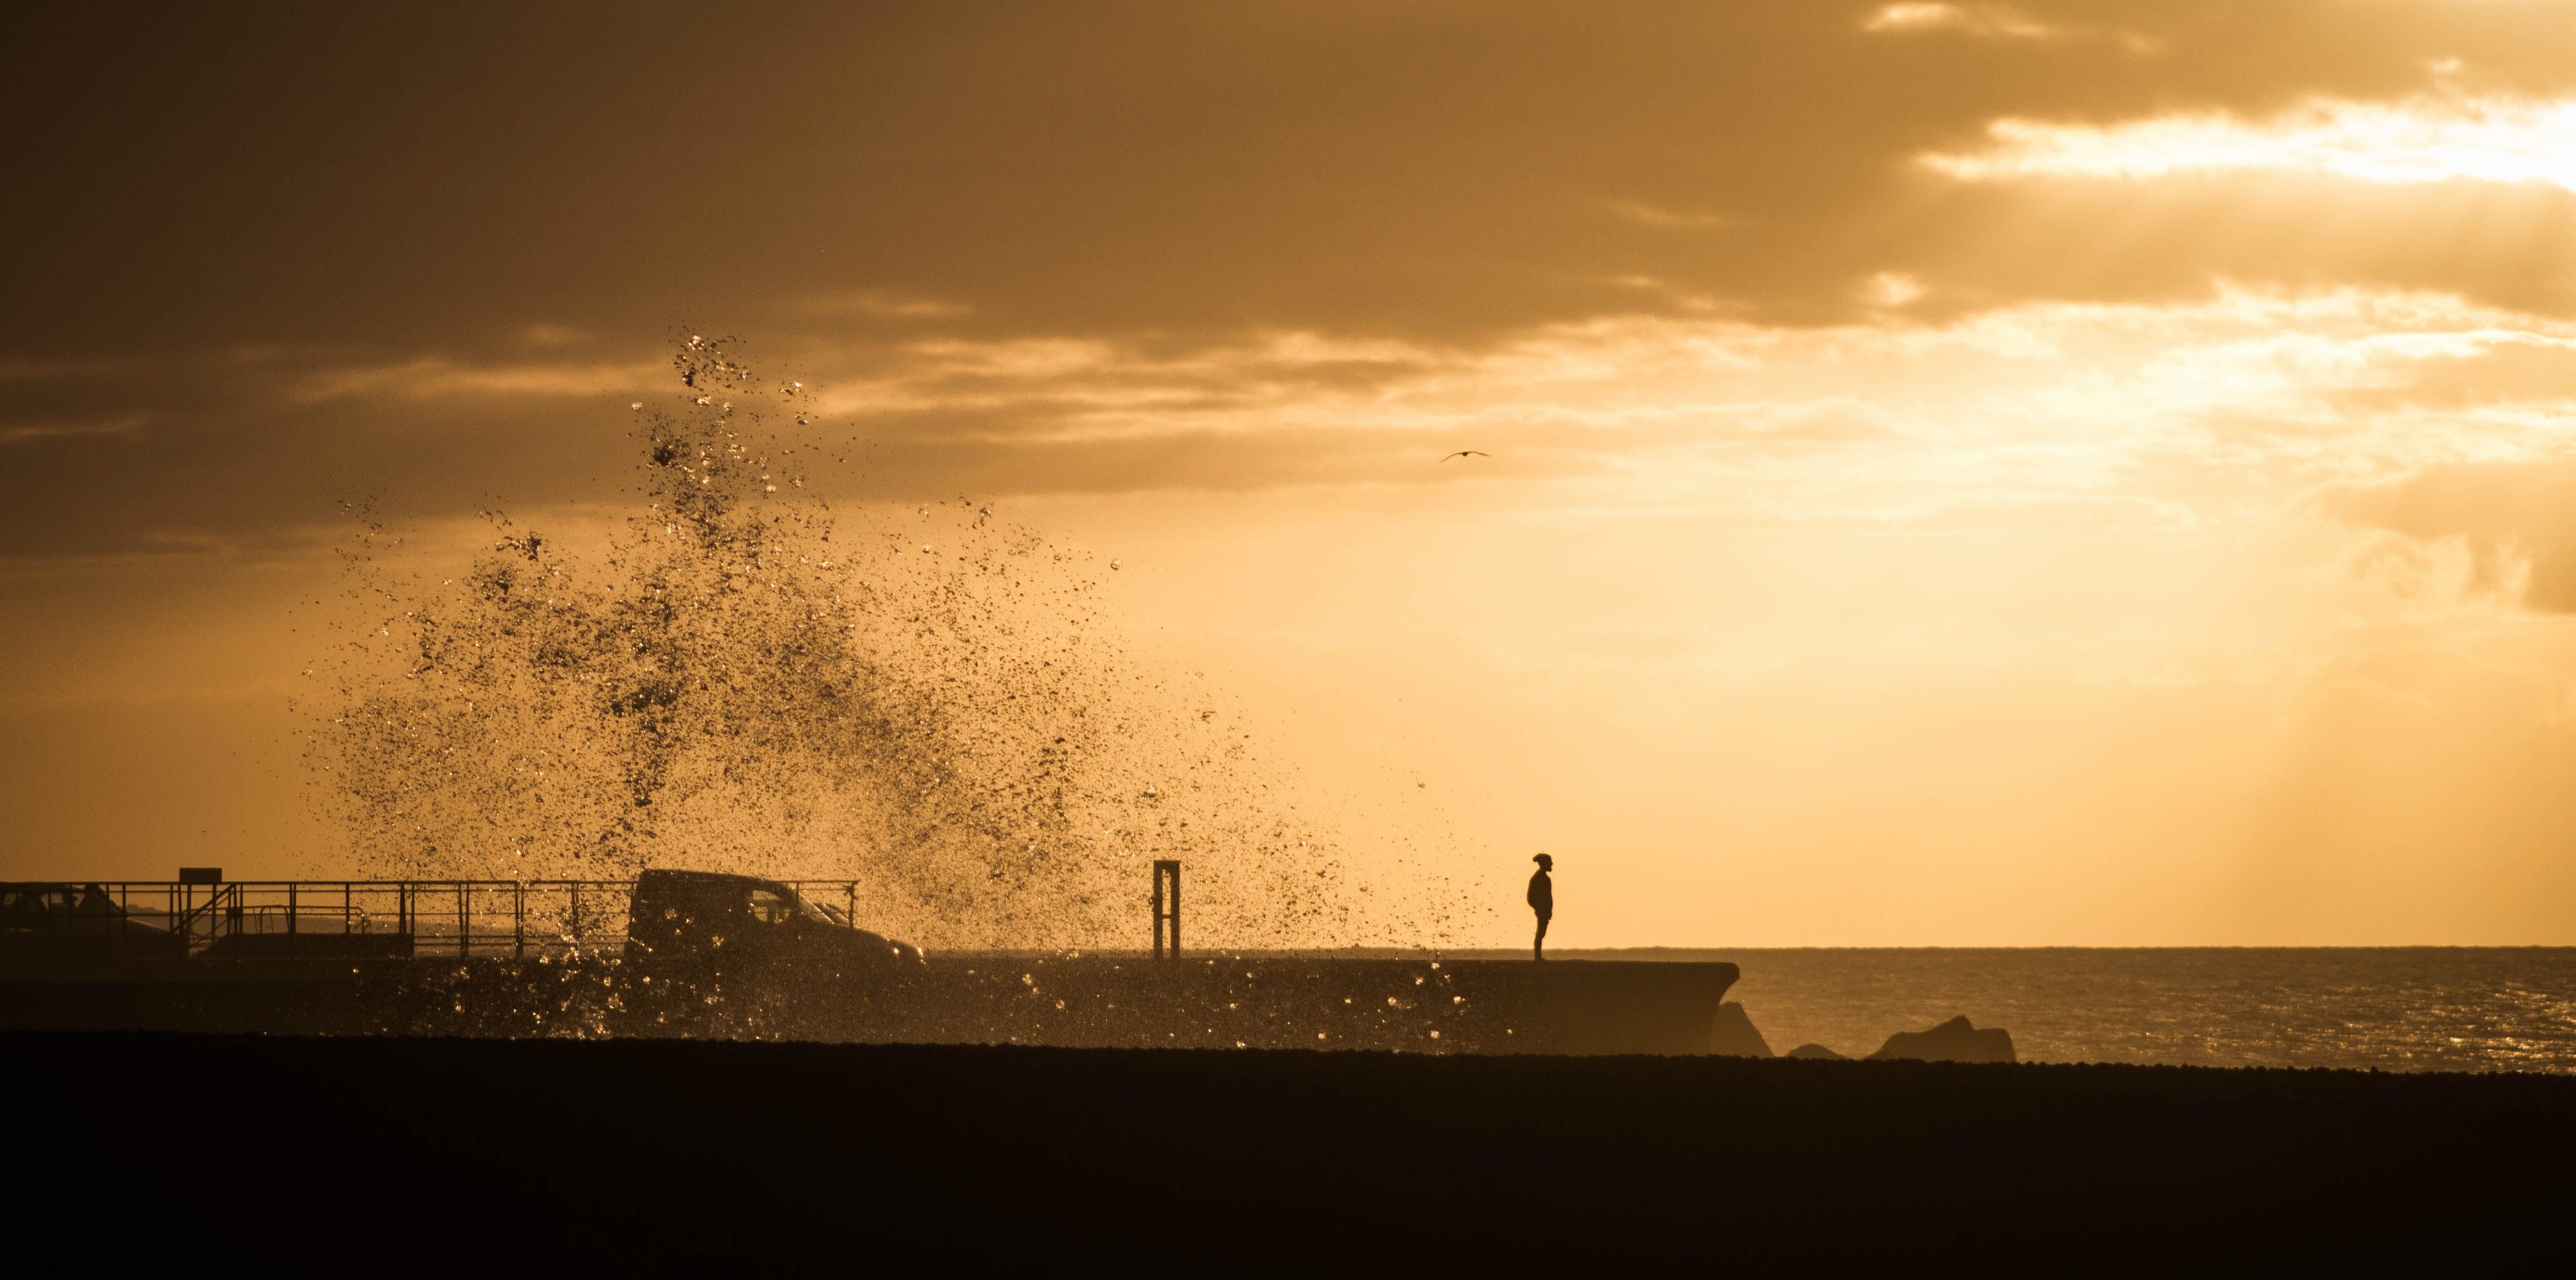 silhouette photo of human standing on beach shore during orange sunset